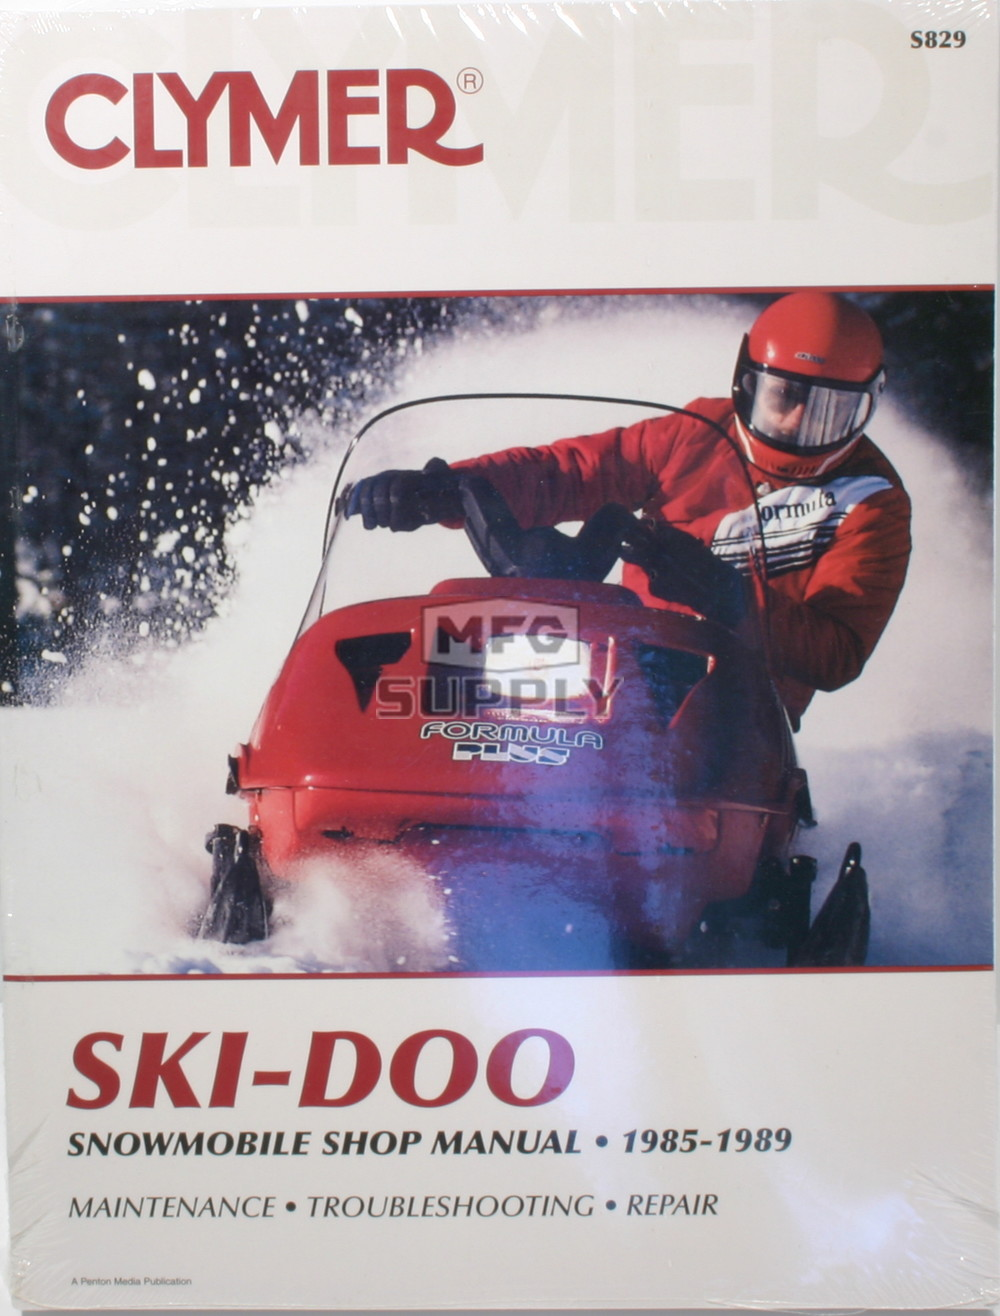 85-89 Ski-Doo Snowmobile Shop Repair, Maintenance & Service Manual